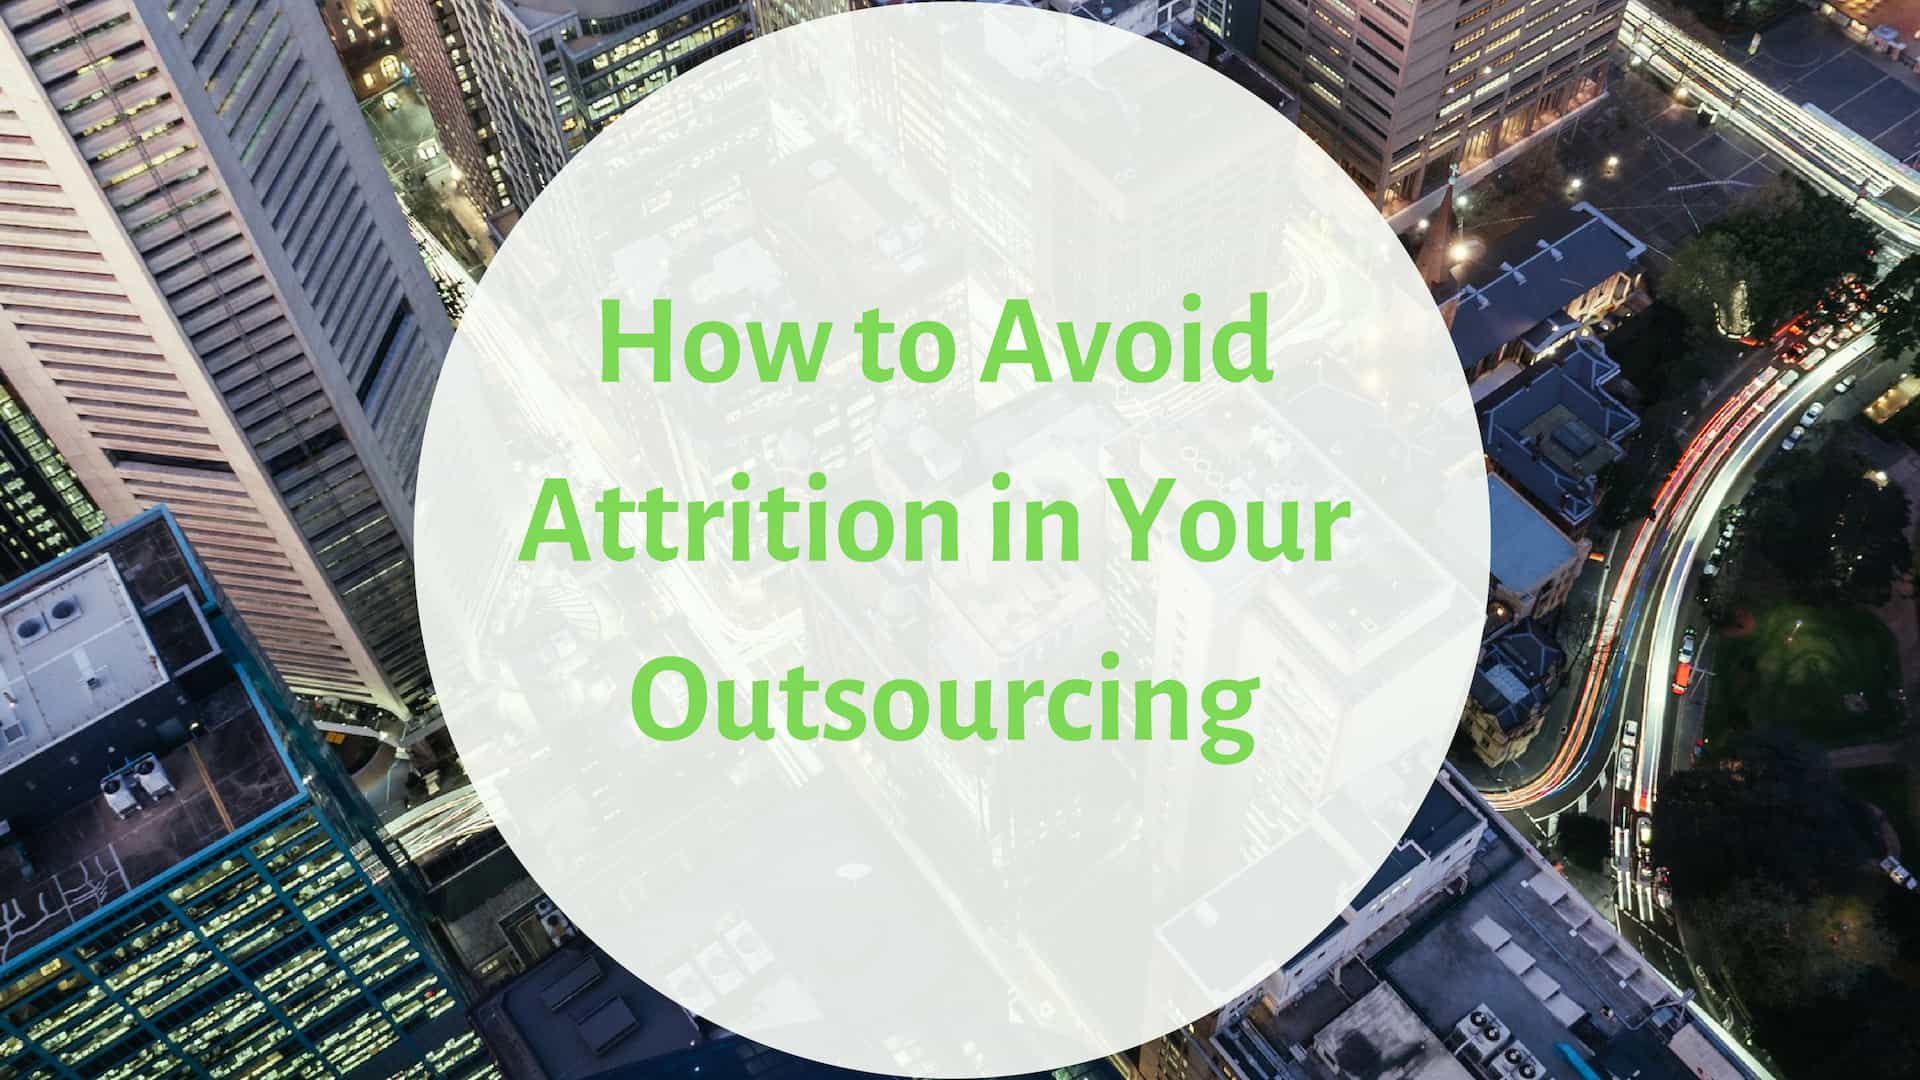 How To Avoid Attrition In Your Outsourcing